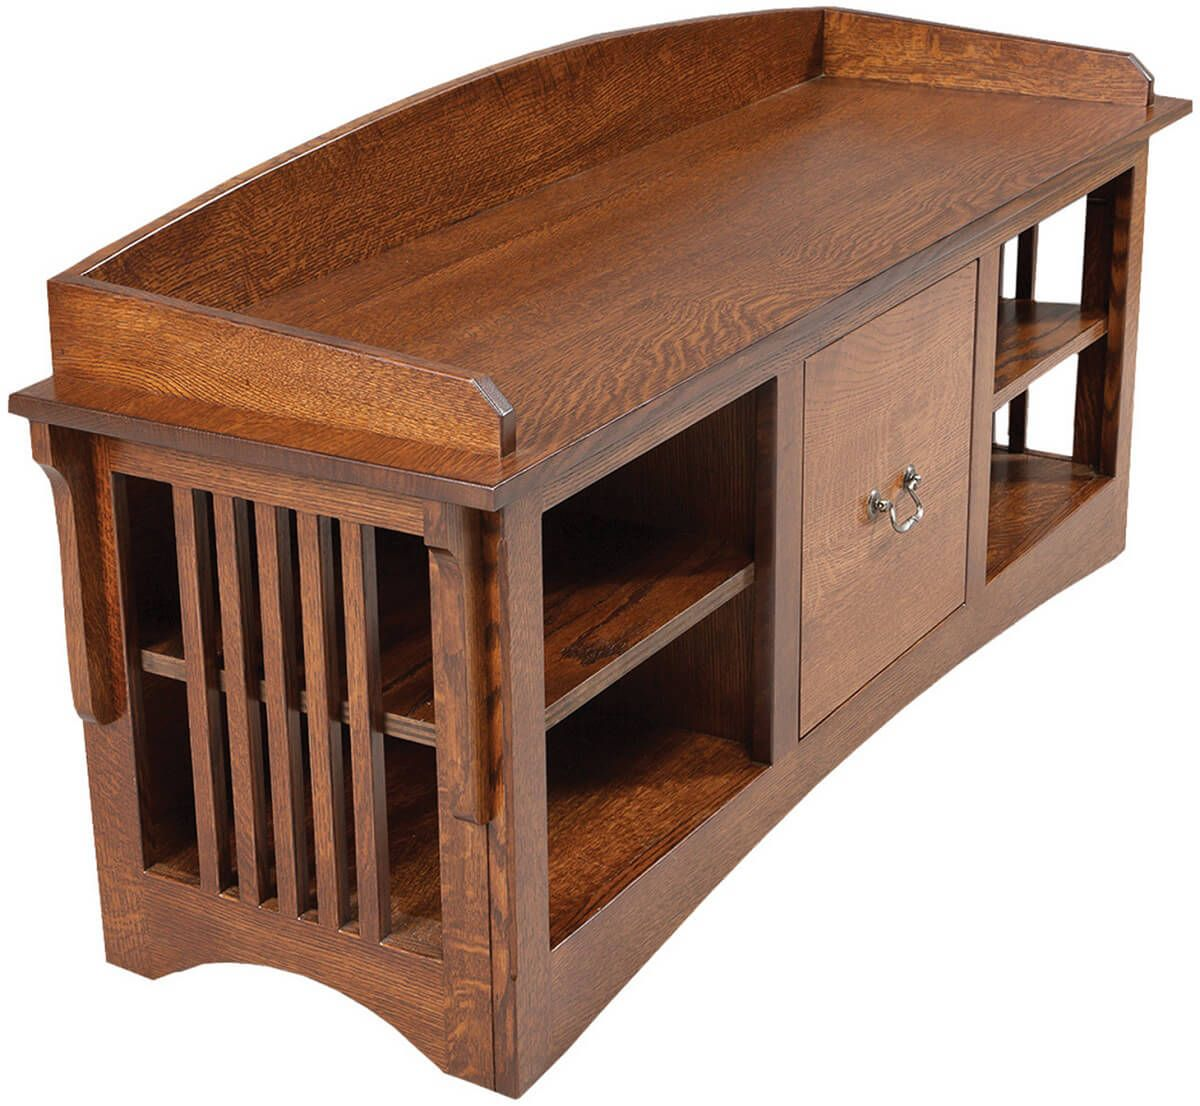 Bungalow Mission Bench with Shelves